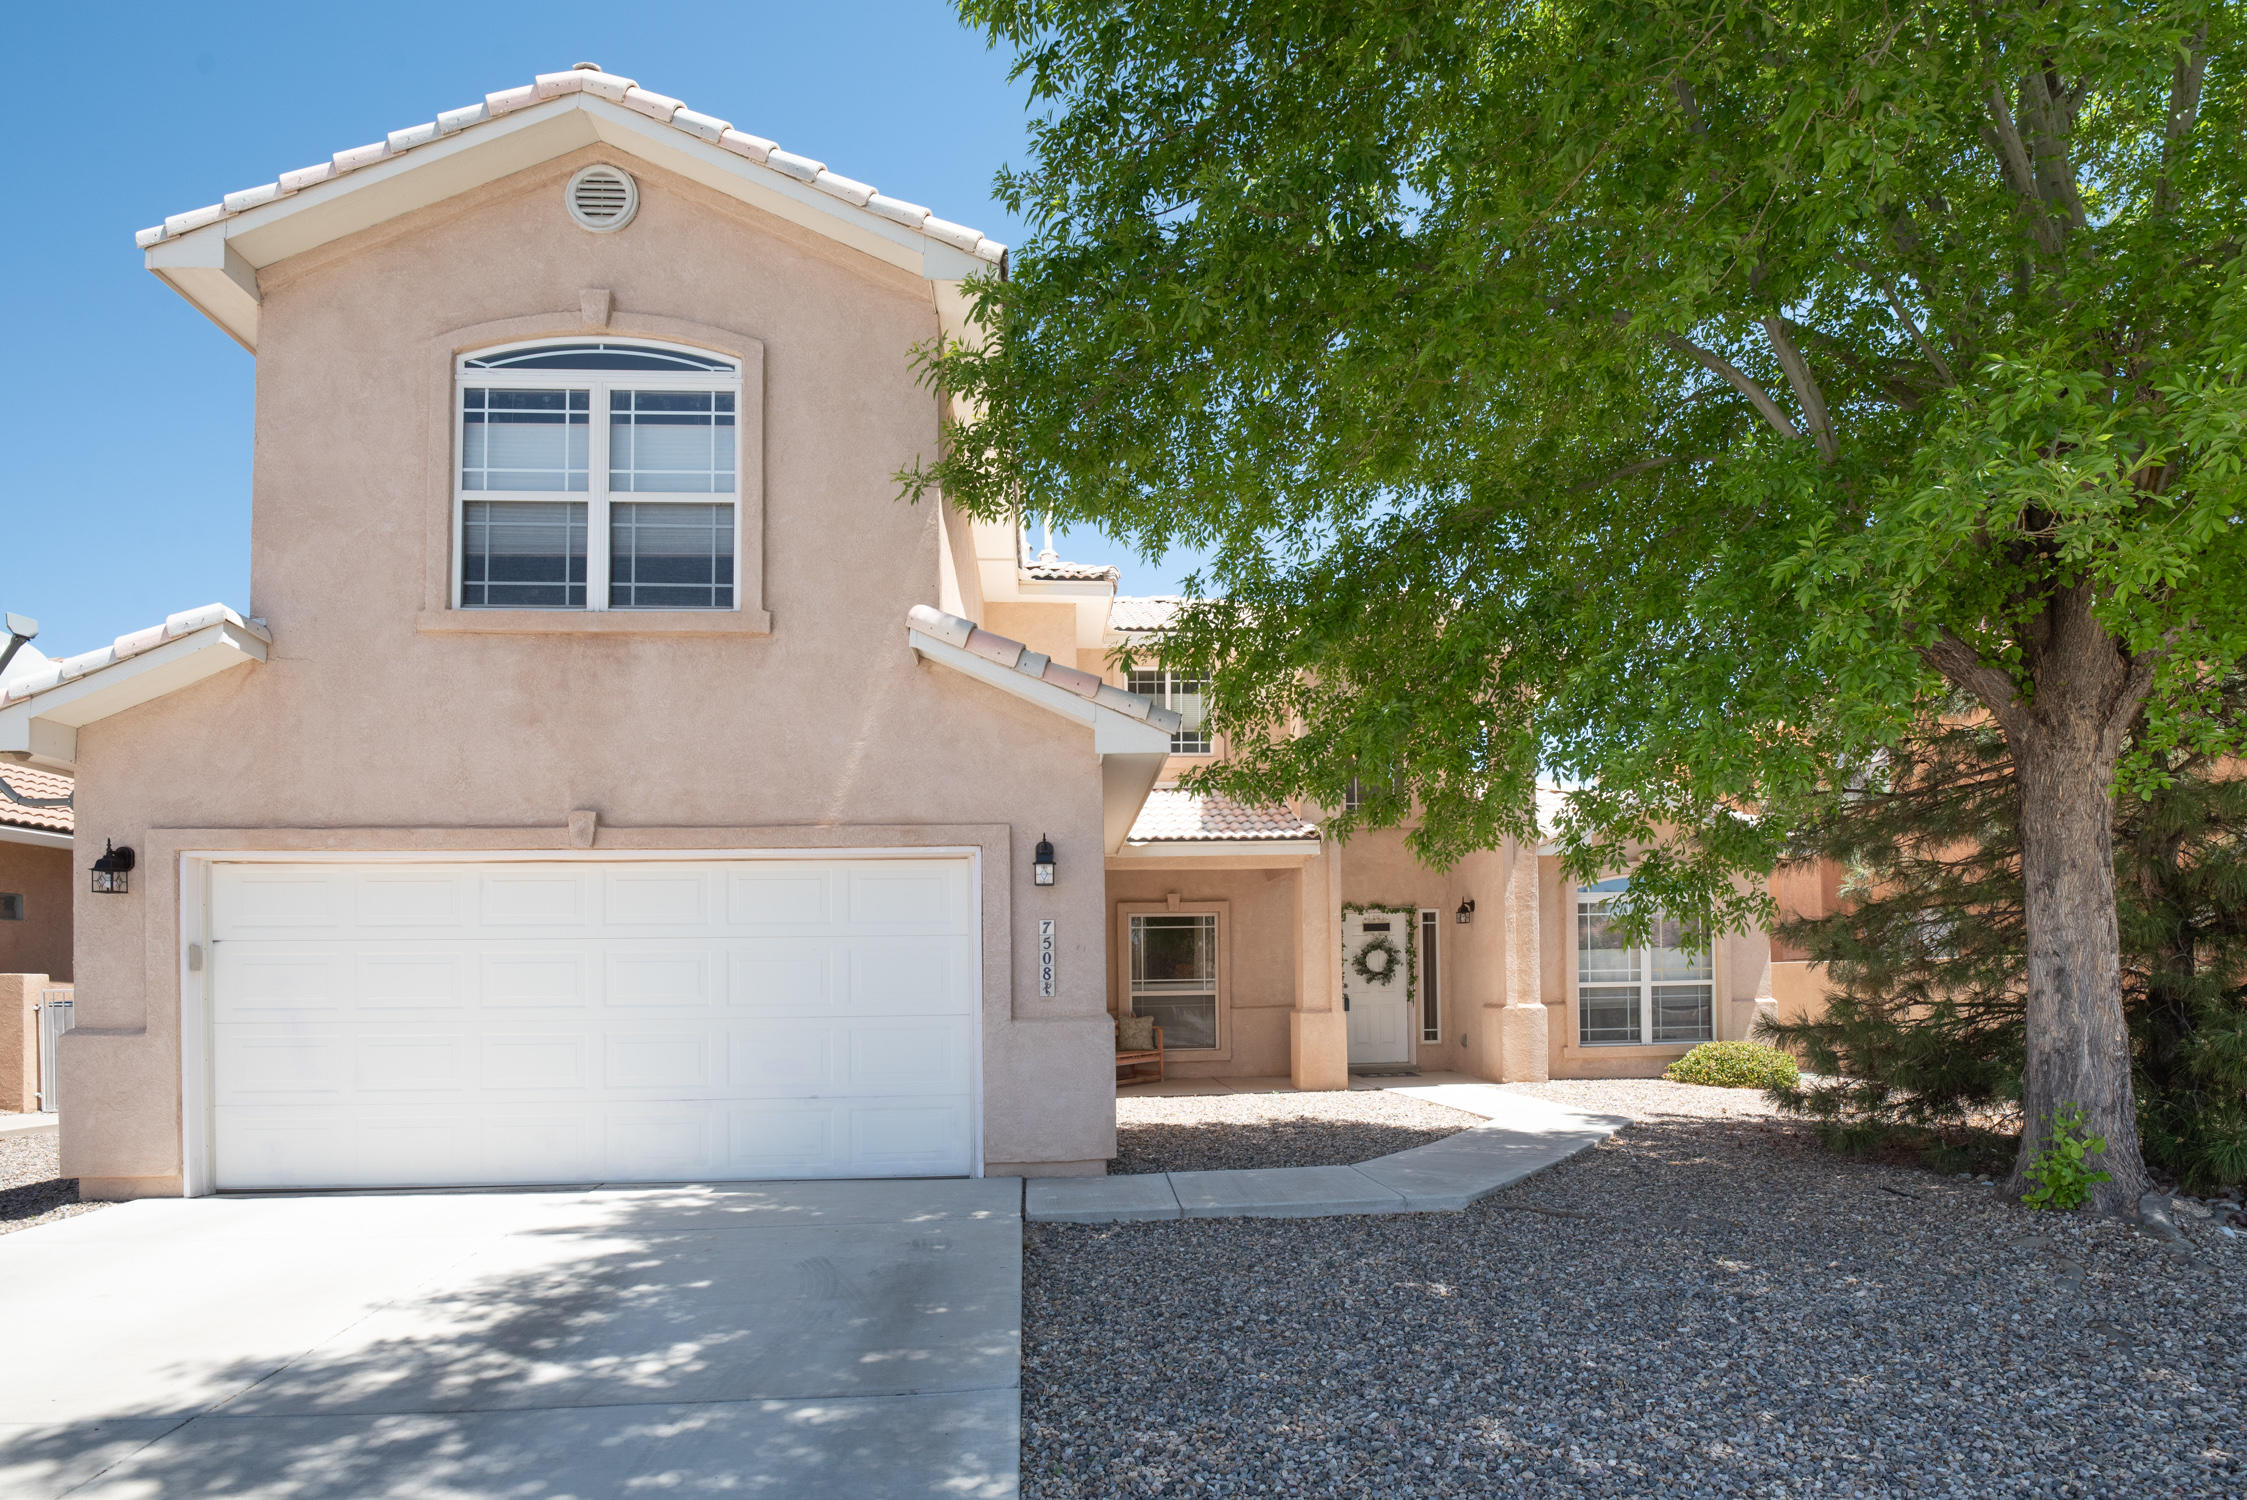 Beautiful 5 bedroom Stillbrooke home in highly sought after planned community! Main level features grand open floorplan w/gorgeous custom staircase; spacious great room opens onto breakfast nook & kitchen w/granite countertops, island & breakfast bar. Cathedral ceilings & Clerestory windows makes this home bright & light. Flexible floorplan could be 2 living areas: office & 5 bedroom plus loft, OR formal dining, greatroom, 5 bedrooms & loft/media area. Master suite on main level has backyard access, spa like en suite & huge walk-in closet. Also, a secondary bedroom on main level. Upstairs features a huge loft/media room, 3 more very large bedrooms, & additional full bathroom. Lovely landscaped backyard w/water feature & fully walled for privacy. New carpet 2019, & updated SS appliances.